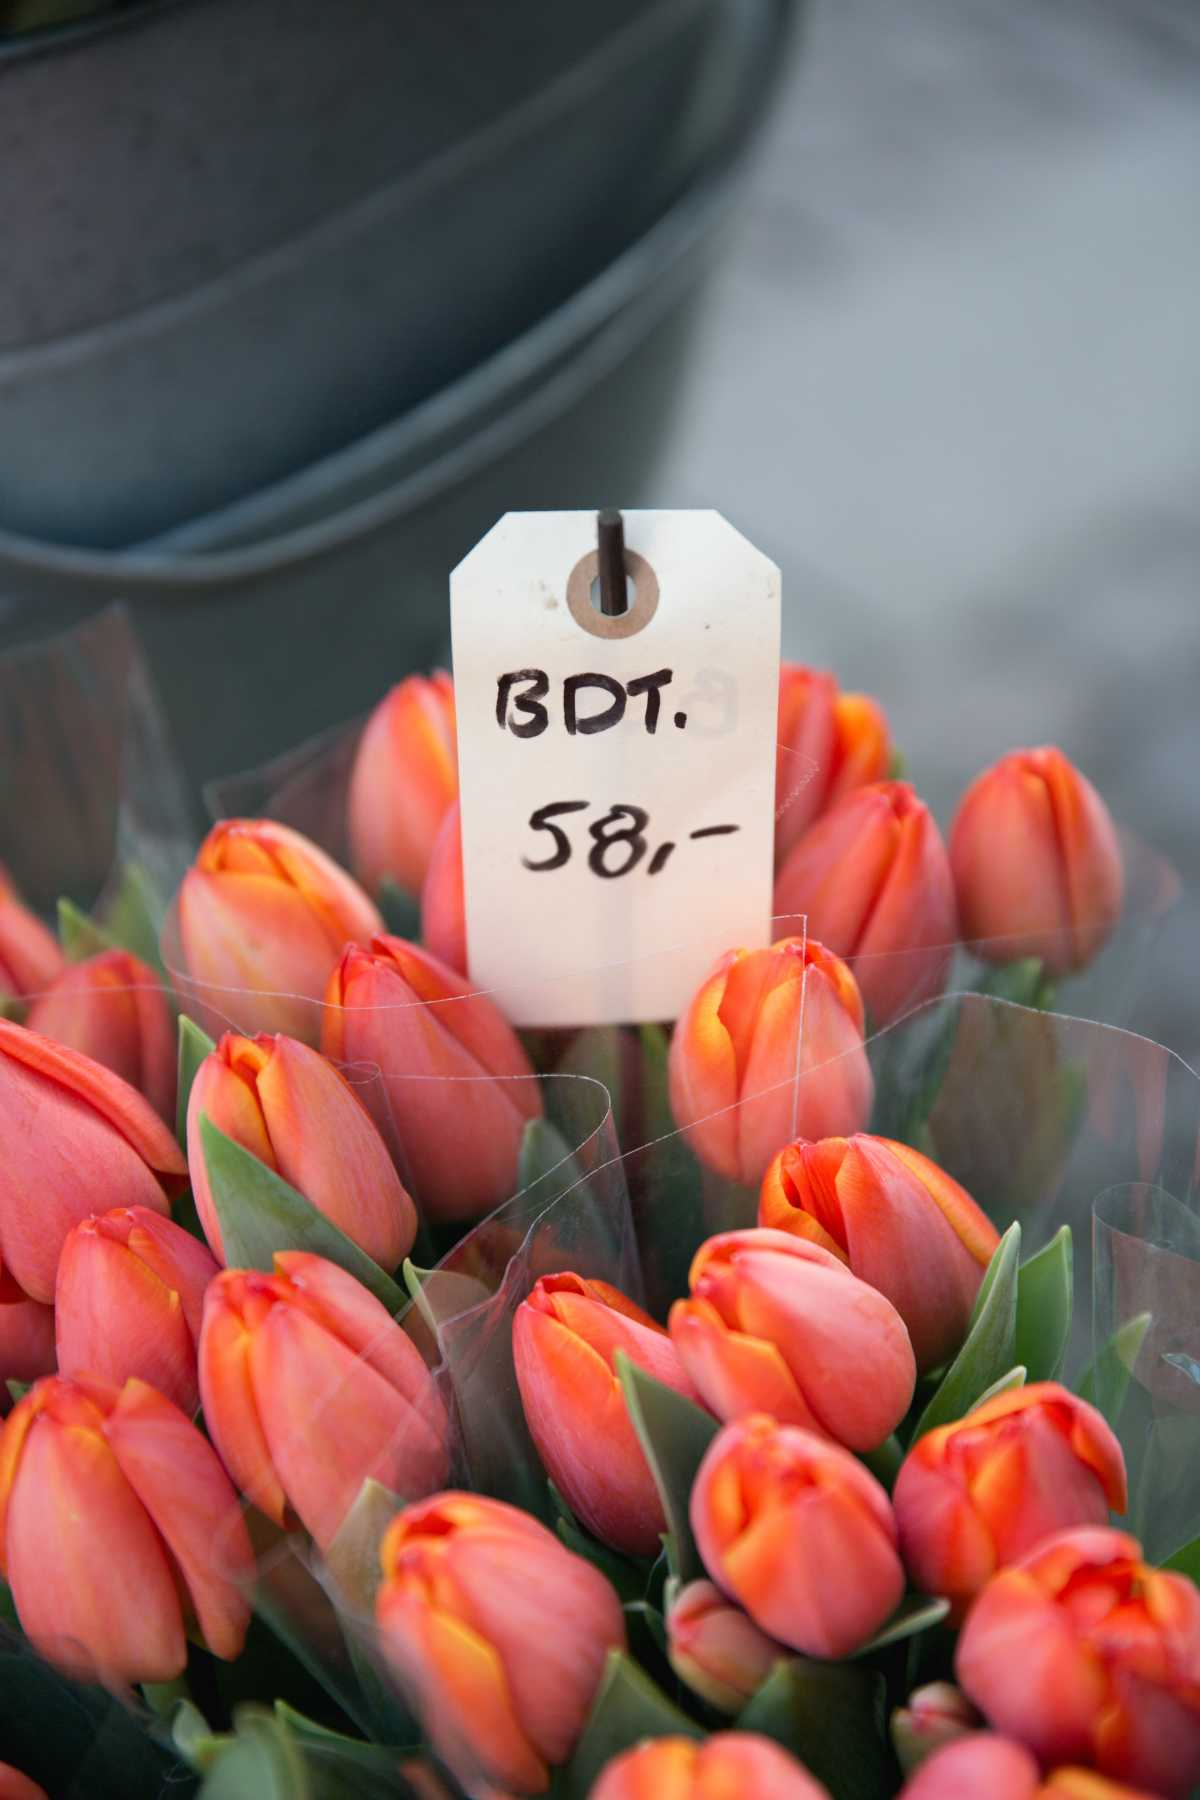 Orange tulips with a price sign saying BDT 58